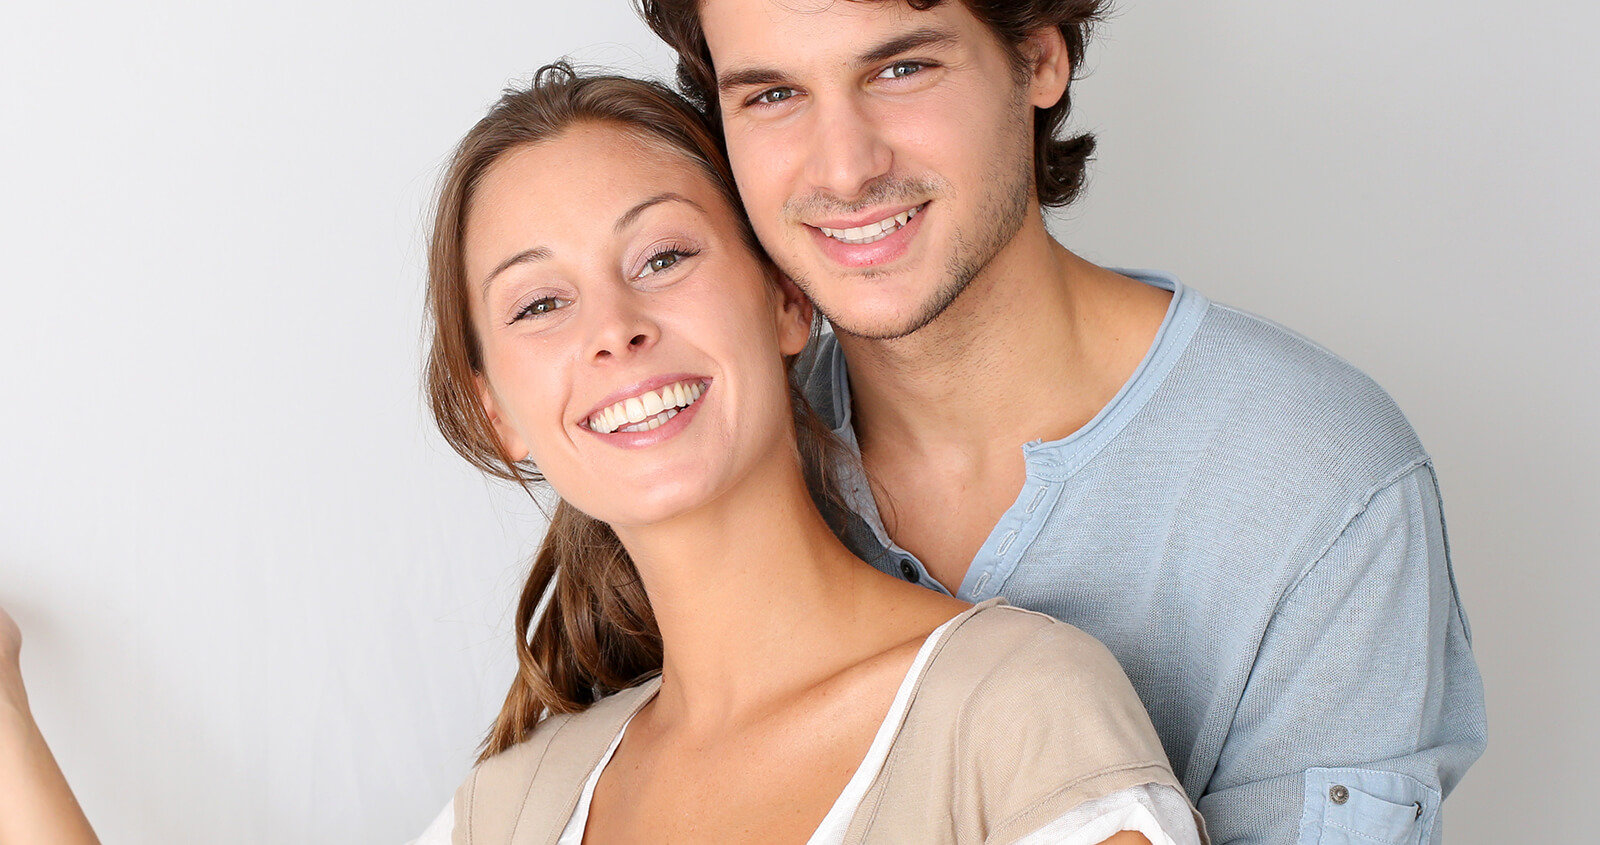 Knowing What to Expect During the Tooth Implant Process From Start to Finish in Highland, MI